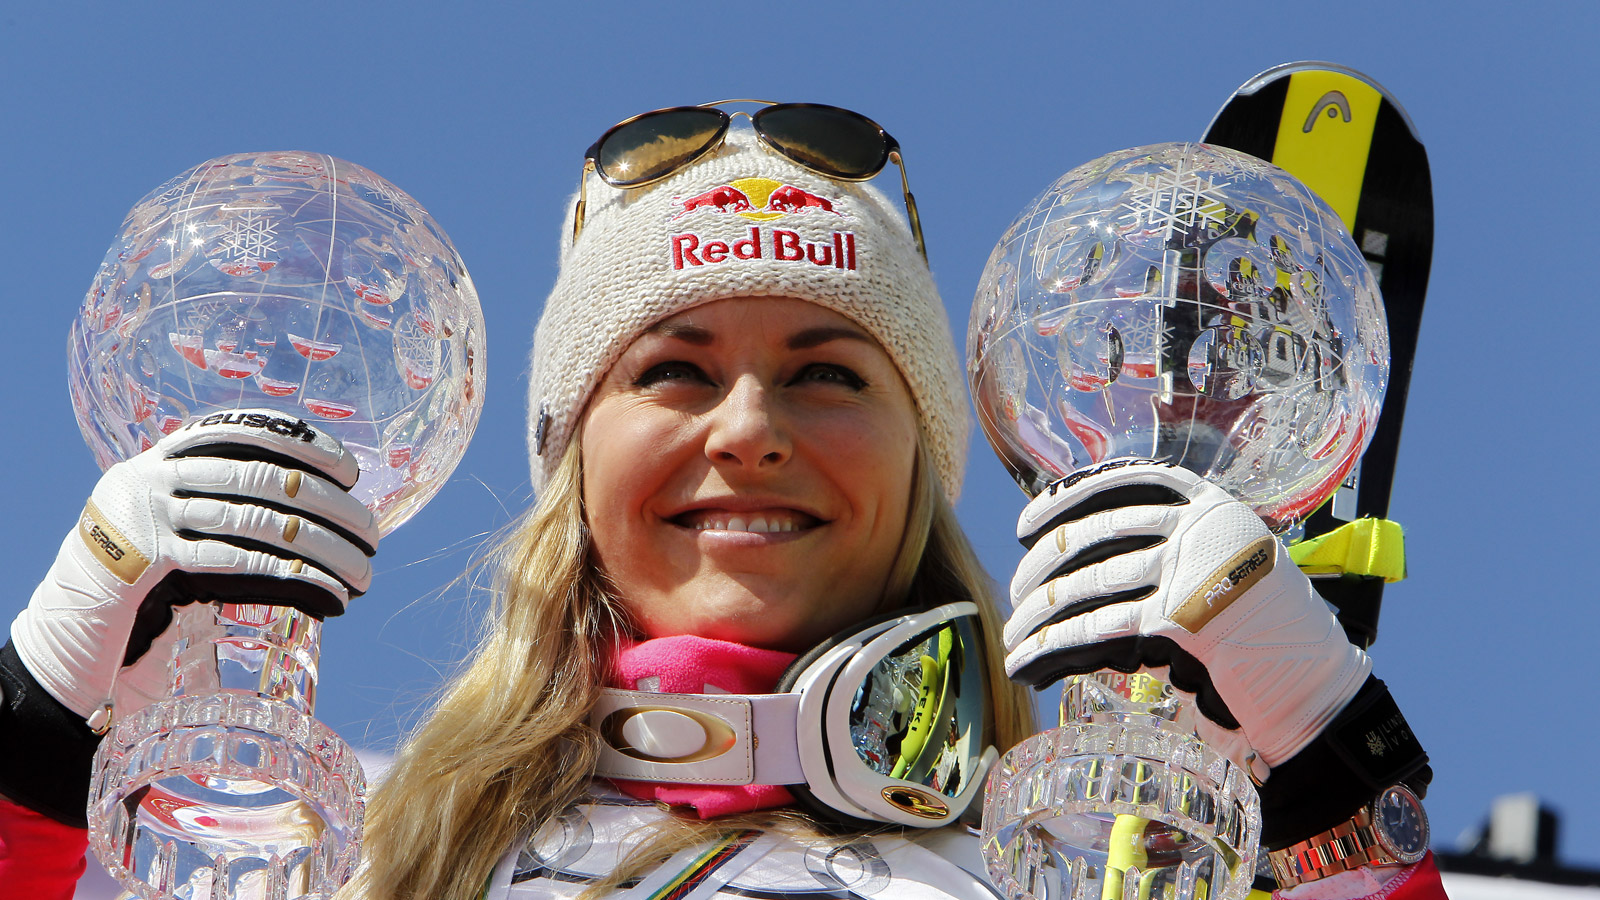 Lindsey Vonn of the USA wins the overall SuperG and Downhill World Cup globes during the Audi FIS Alpine Ski World Cup Finals Women's Super G on March 19, 2015, in Meribel, France. (Photo by Alexis Boichard/Agence Zoom/Getty Images)